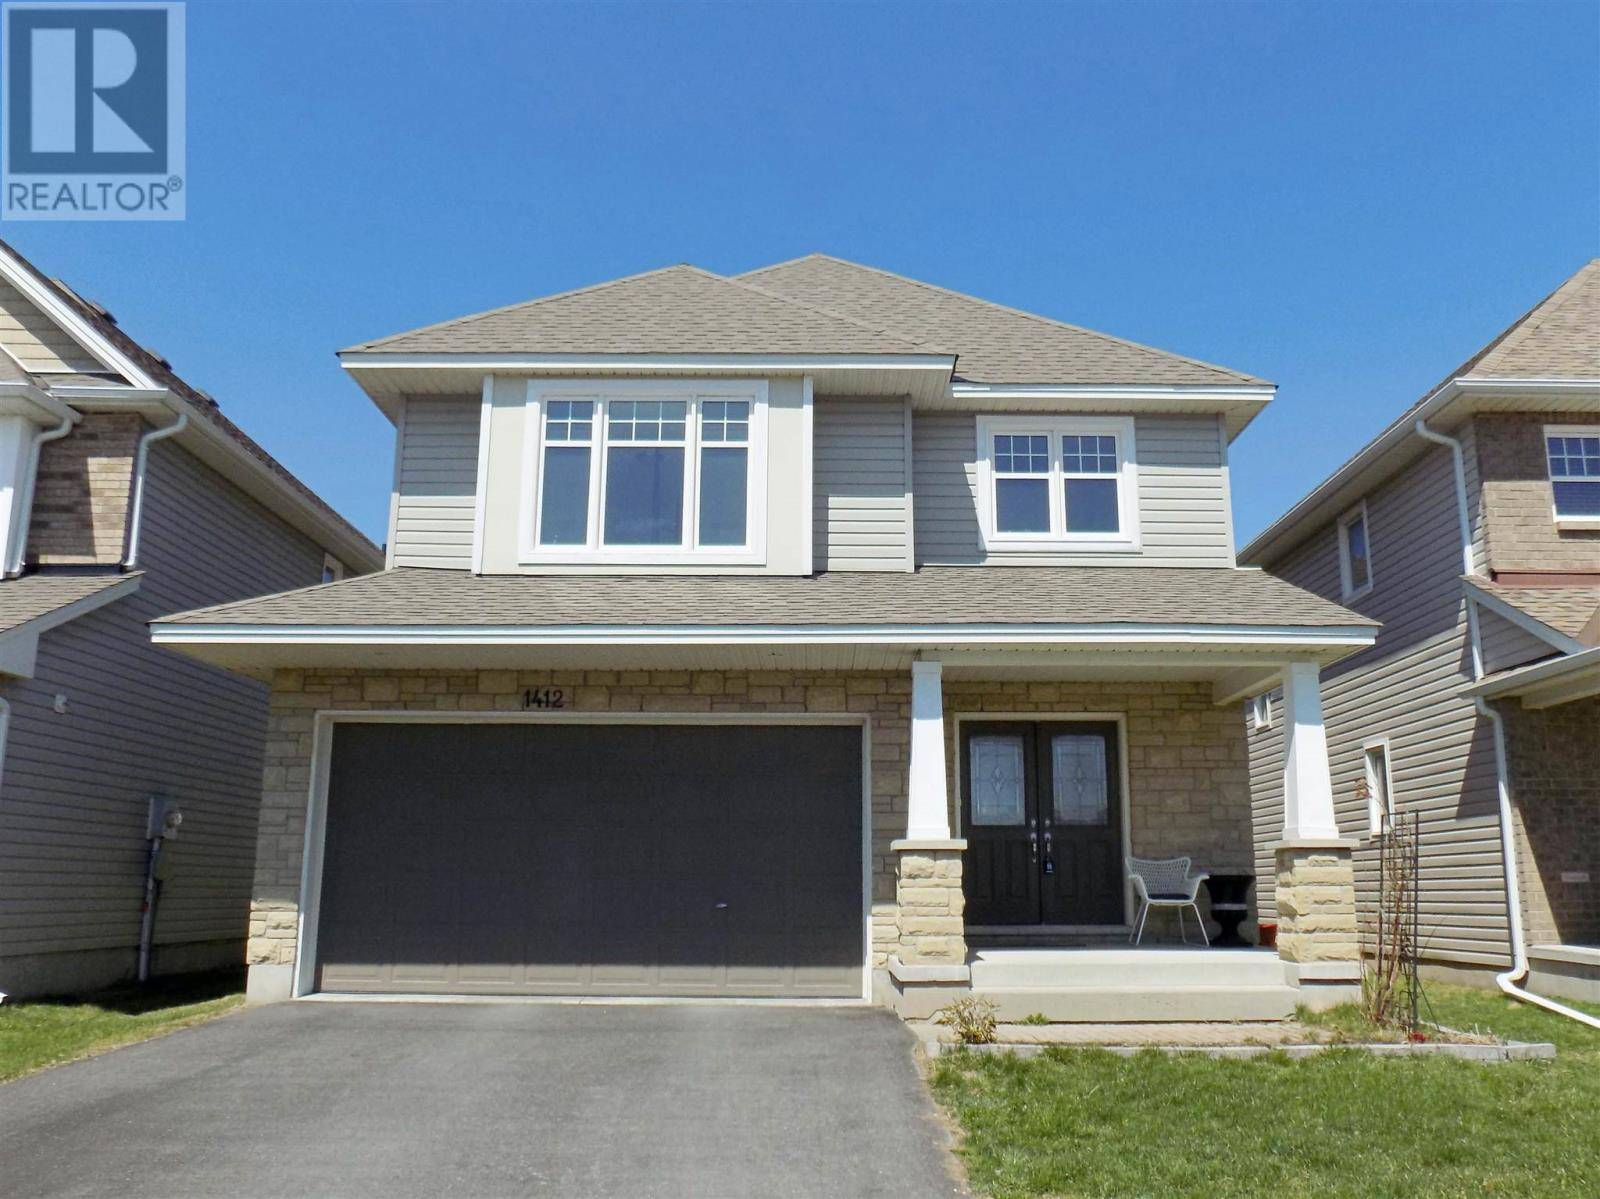 House for sale at 1412 Evergreen Dr Kingston Ontario - MLS: K20001986